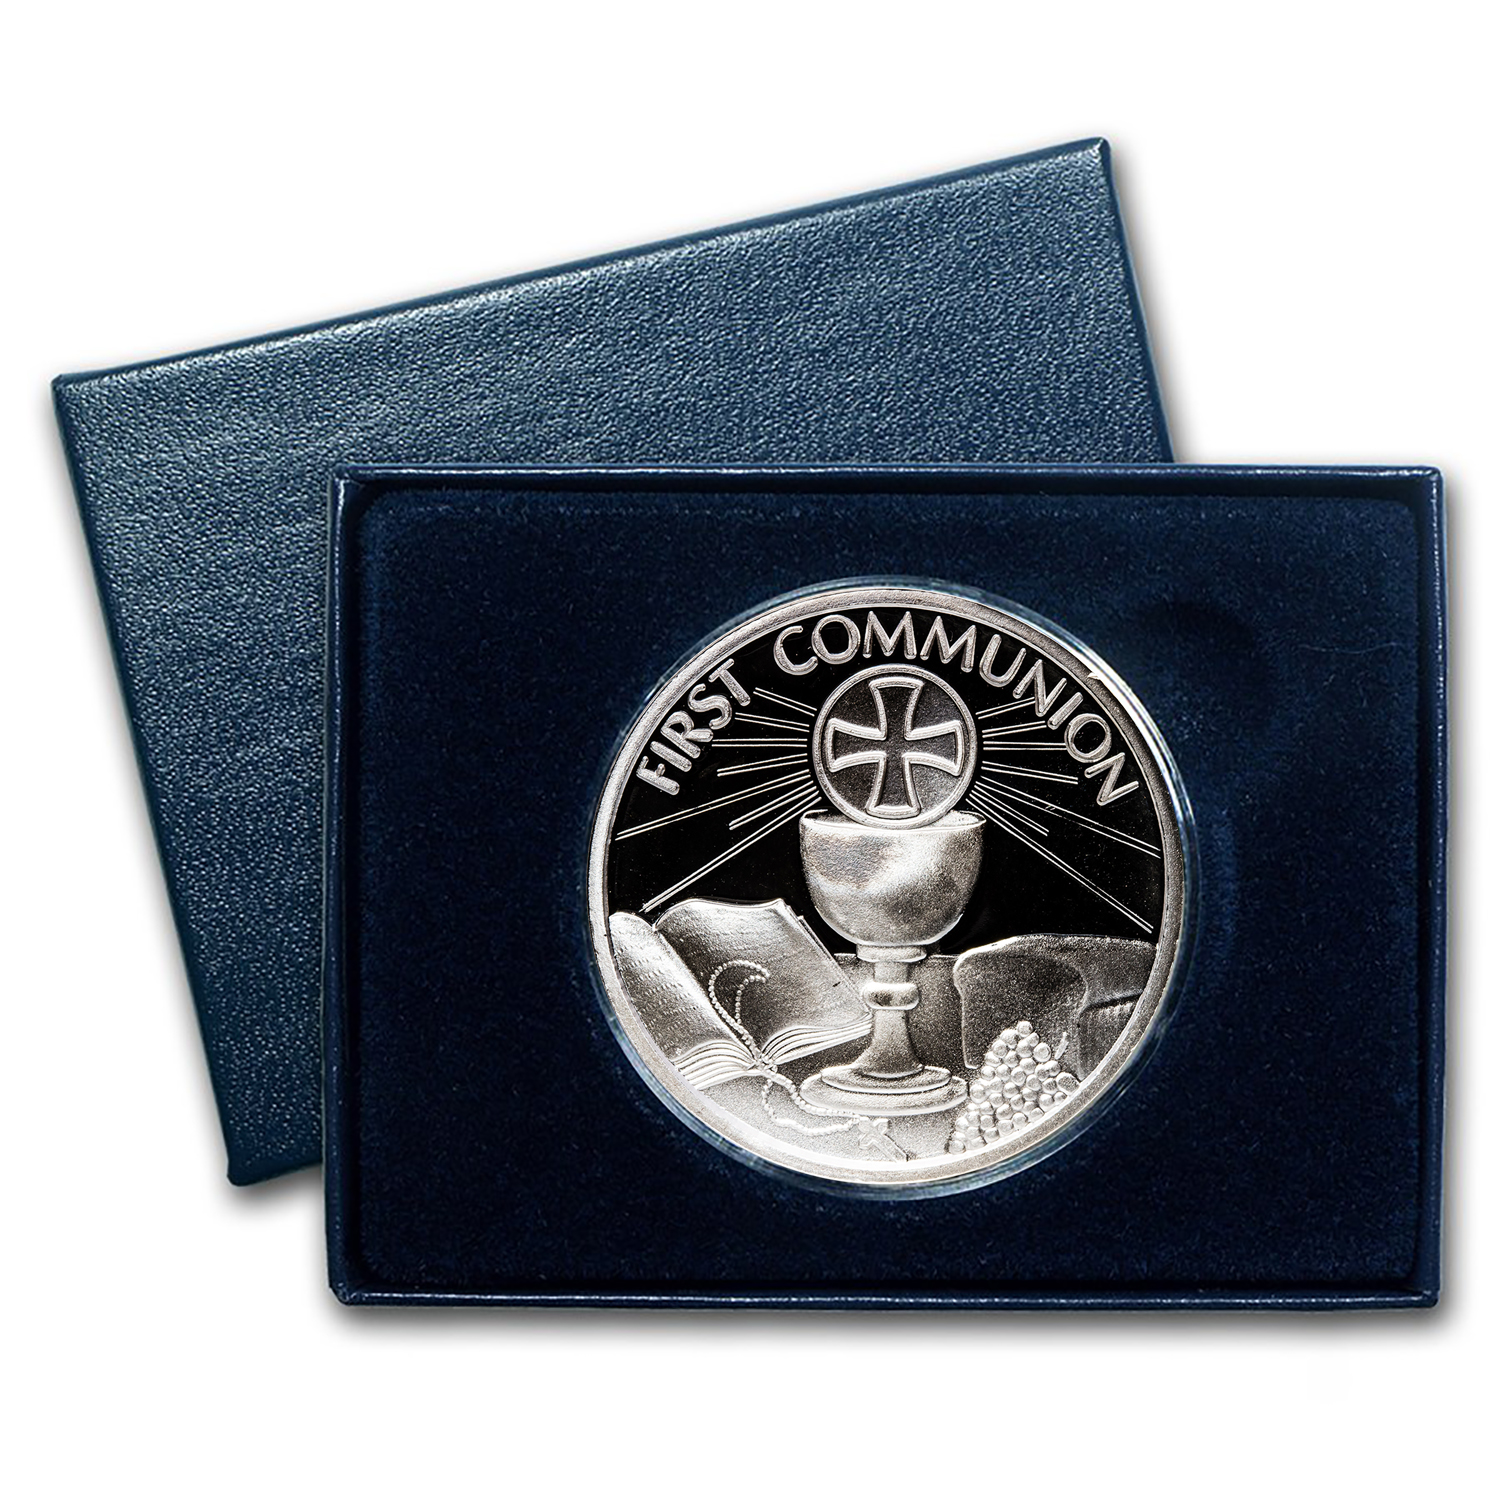 2014 1 oz Silver Round - Communion (w/Box & Capsule)